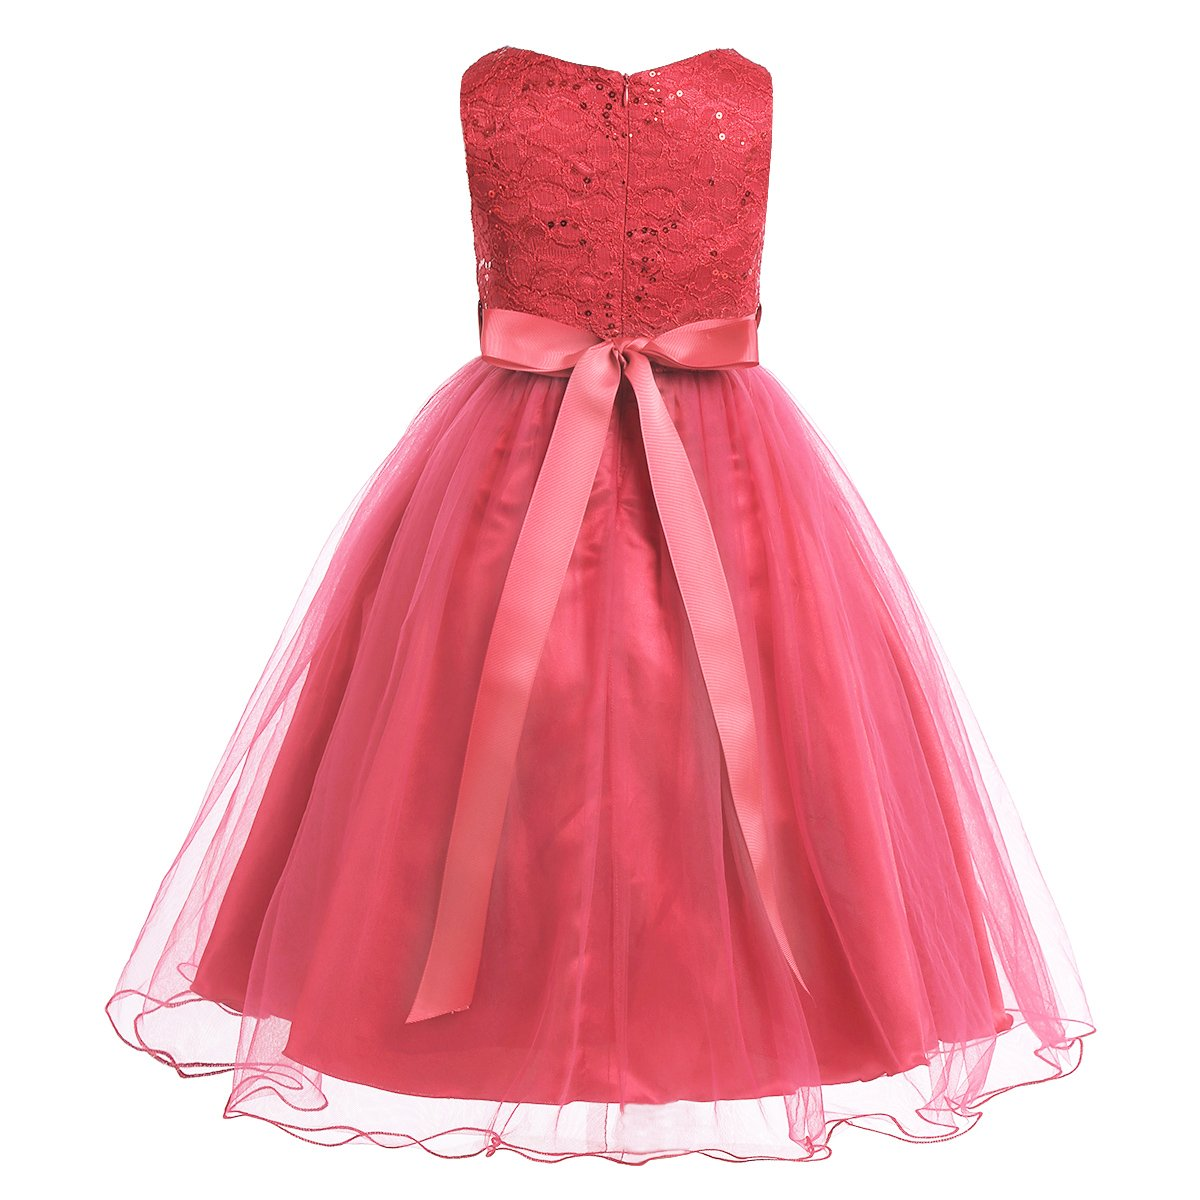 CHICTRY Kids Girls Glitter Sequins Top Wedding Pageant Party Ball Gown Flower Dresses with Rhinestones Sash